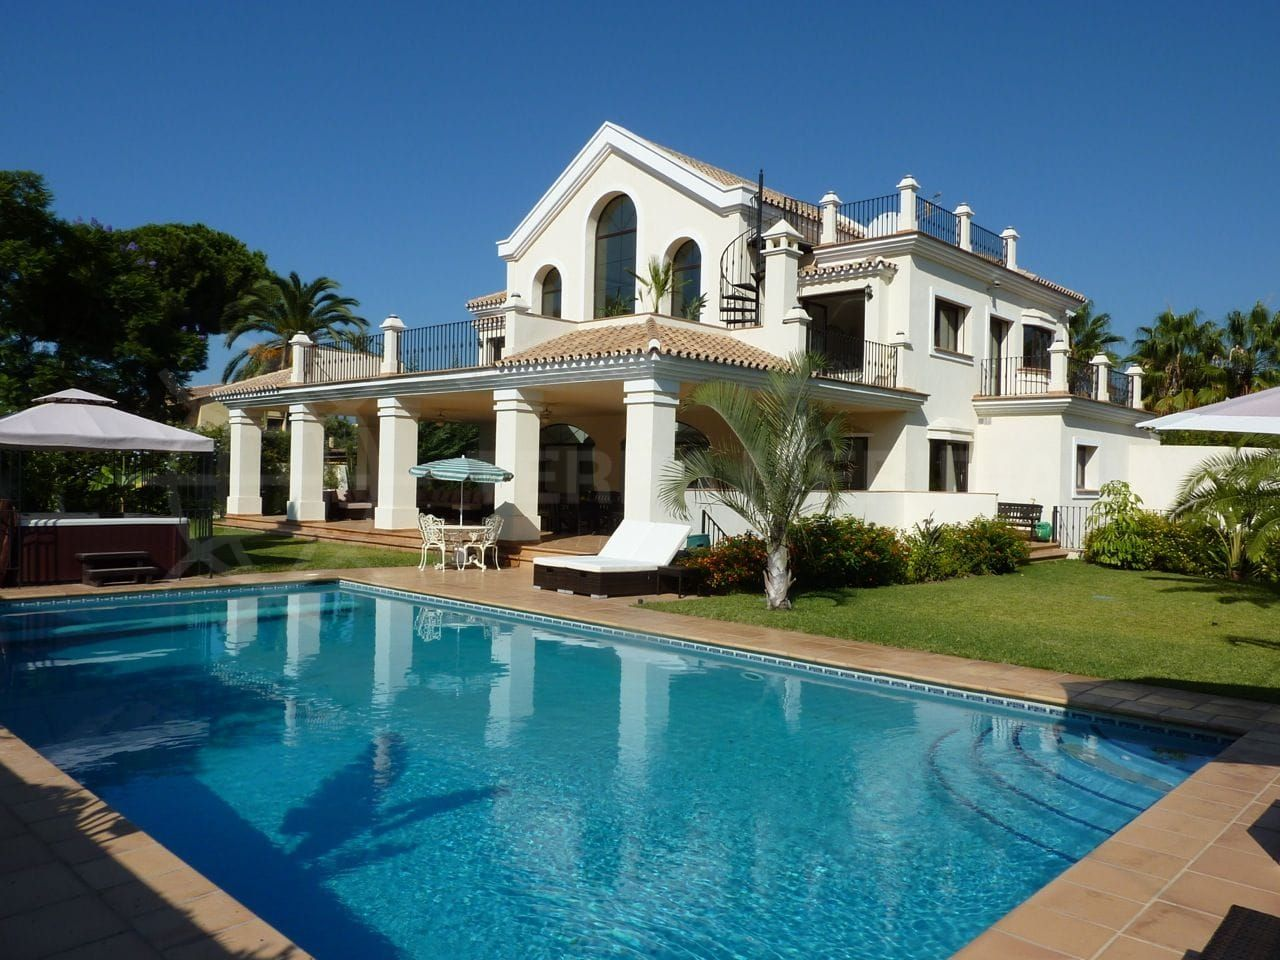 Succesful Costa del Sol property sale